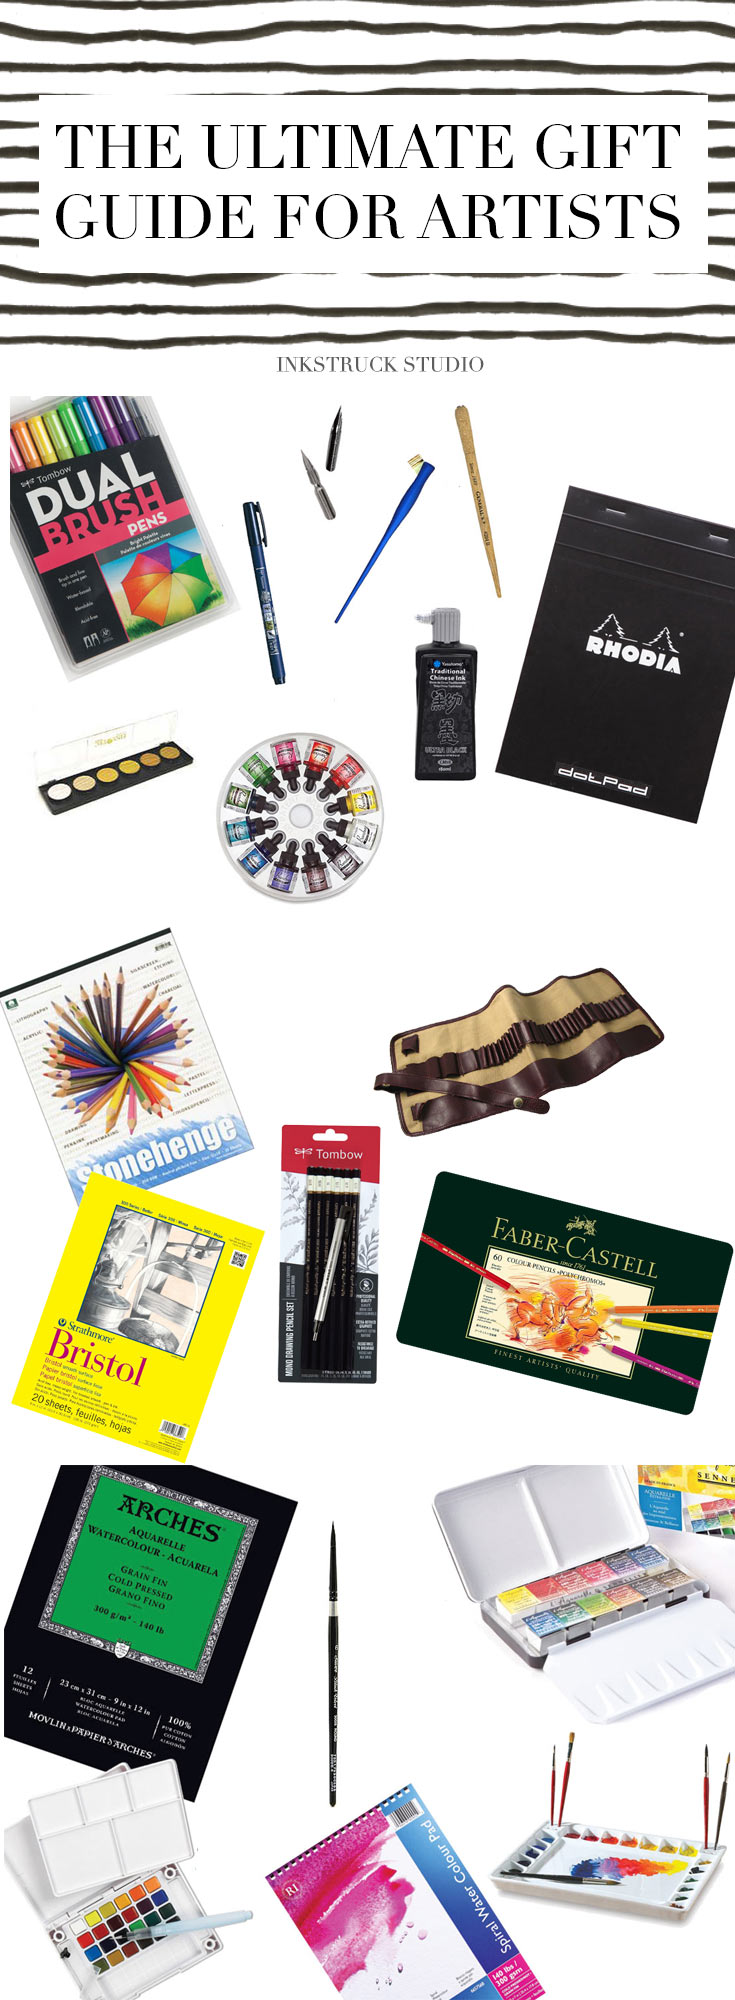 Creative gift ideasfor artists!Confused about what to buy for your fellow creative?This gift guide for artists will make it much easier for you to choose what's best for your creative friend,spouse or sibling.Enjoy!